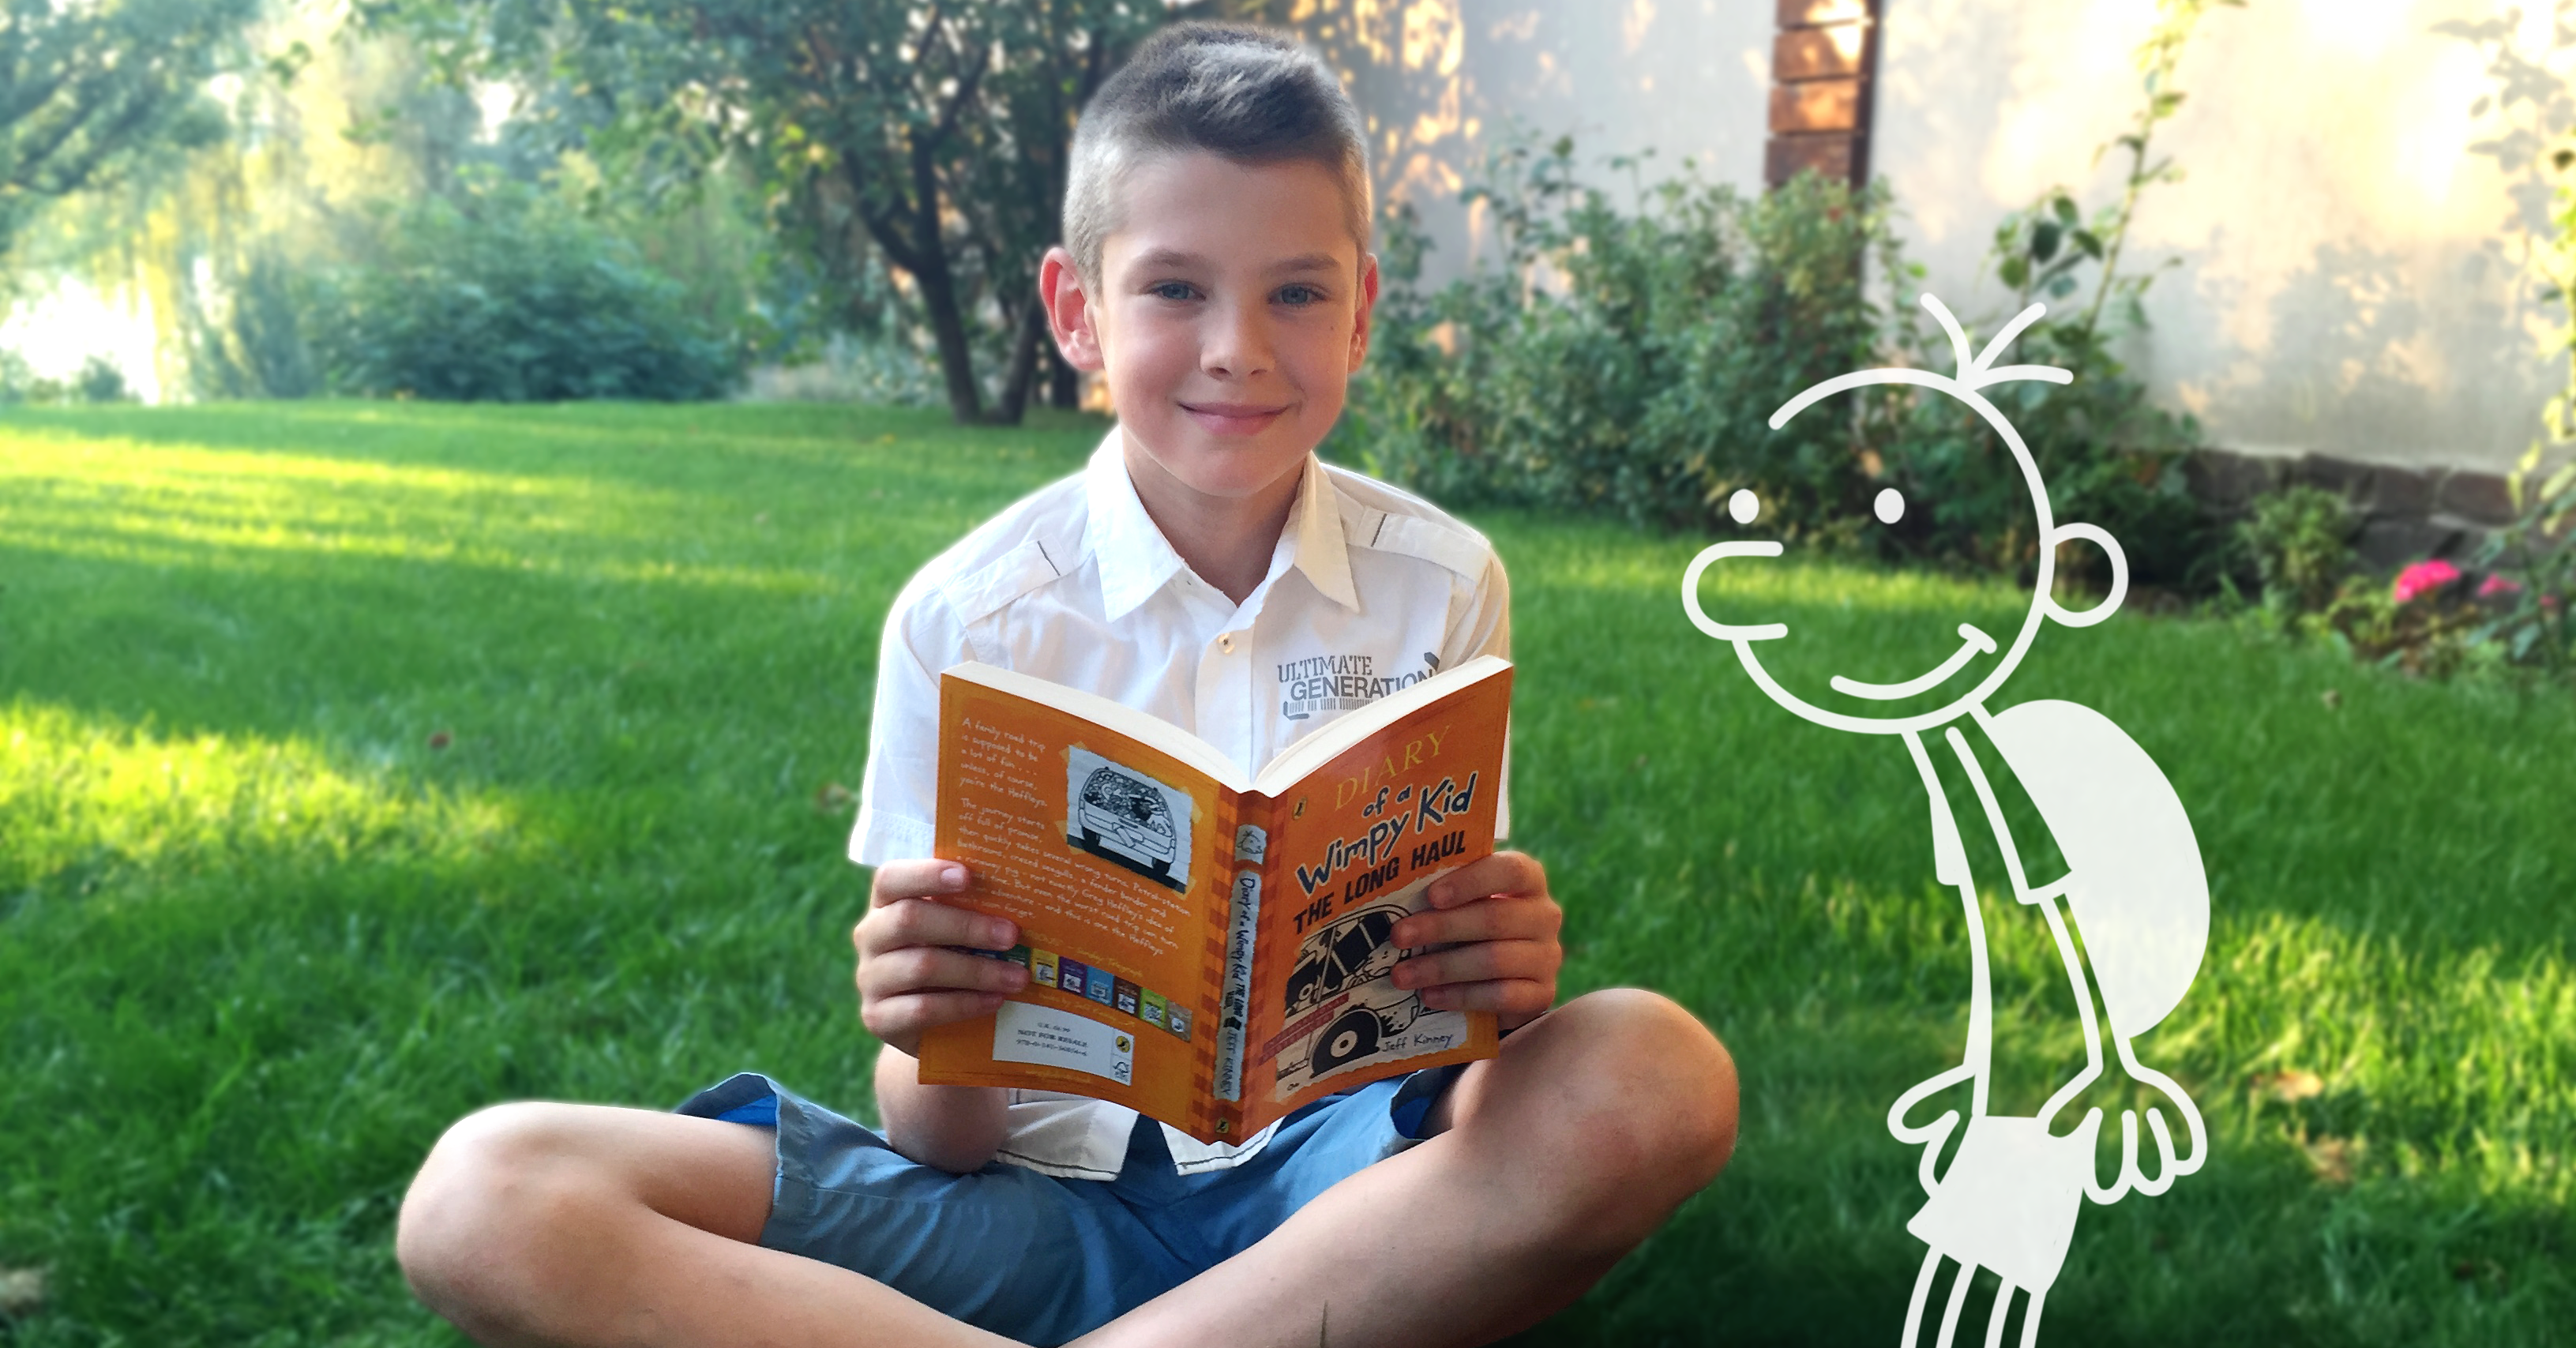 My son reading the Diary of a Wimpy Kid by Jeff Kinney